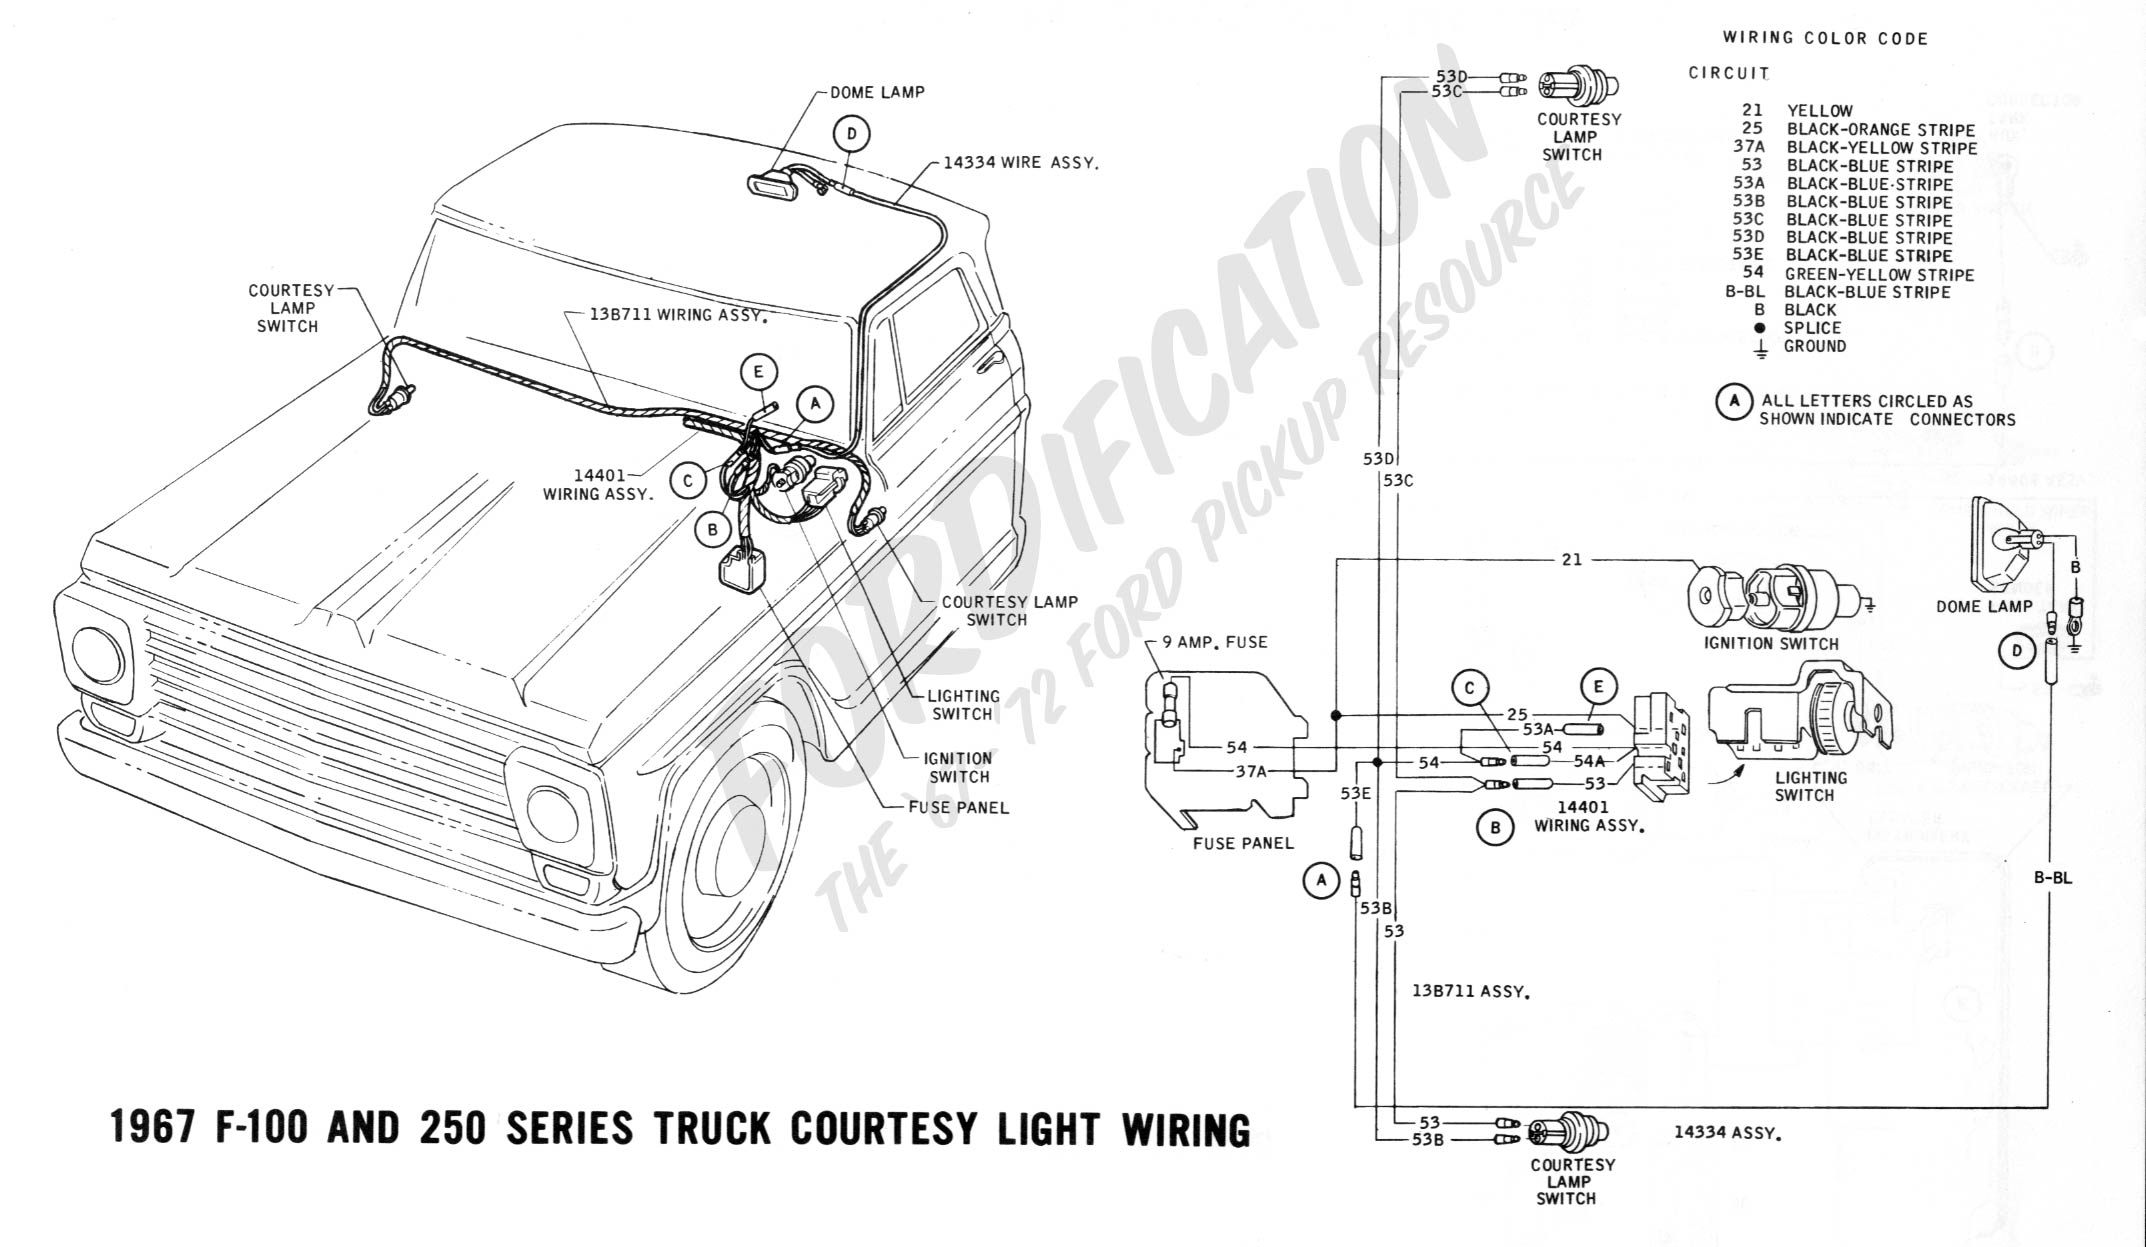 wiring 1967courtesylight wiring diagram for 1972 ford f100 the wiring diagram 1967 ford f100 wiring harness at edmiracle.co